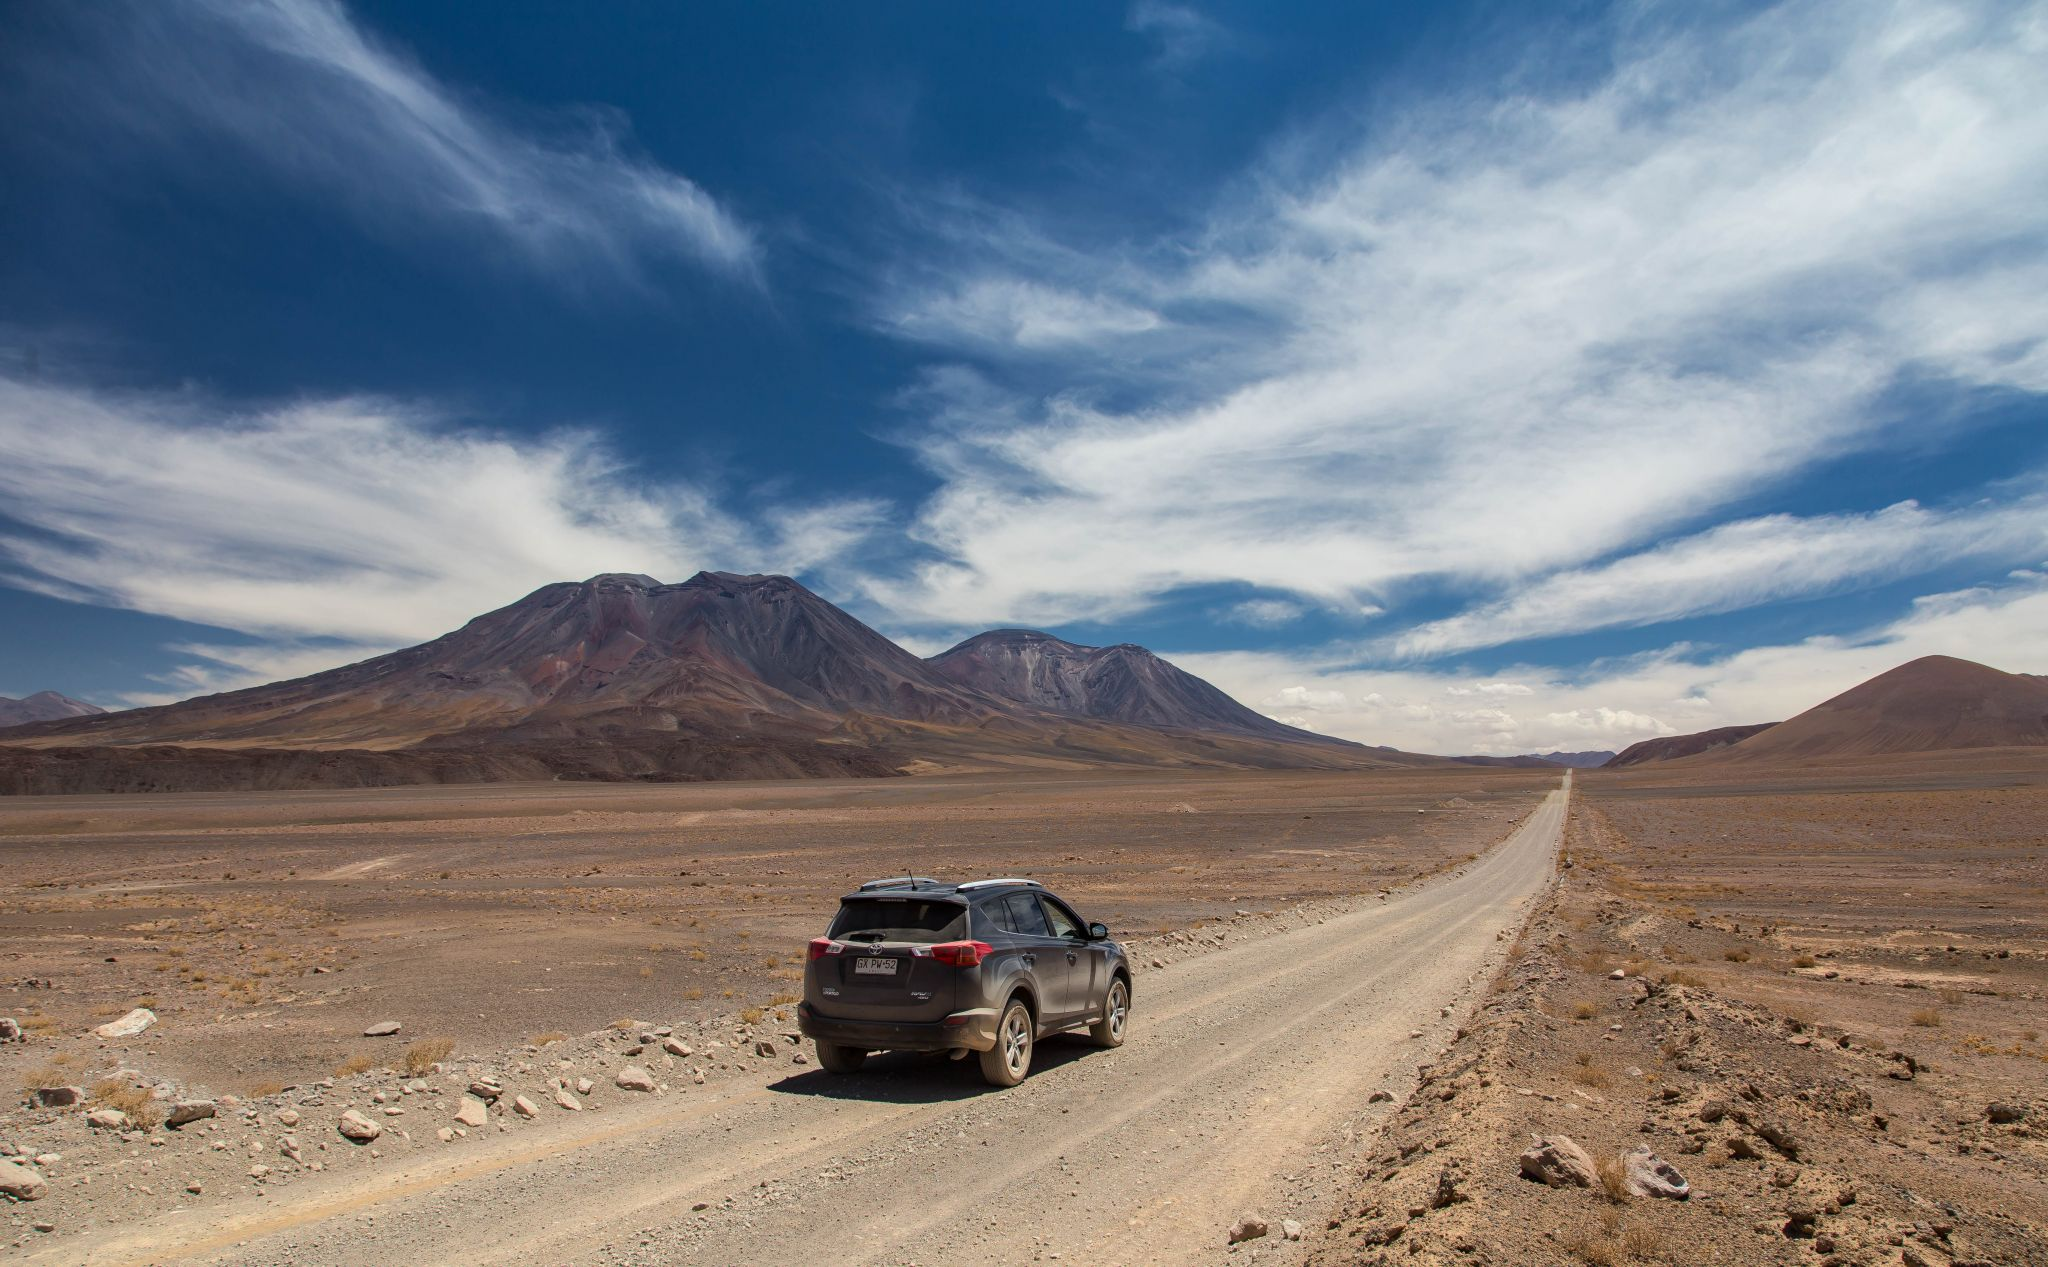 Road to the San Pedro Volcano, Chile